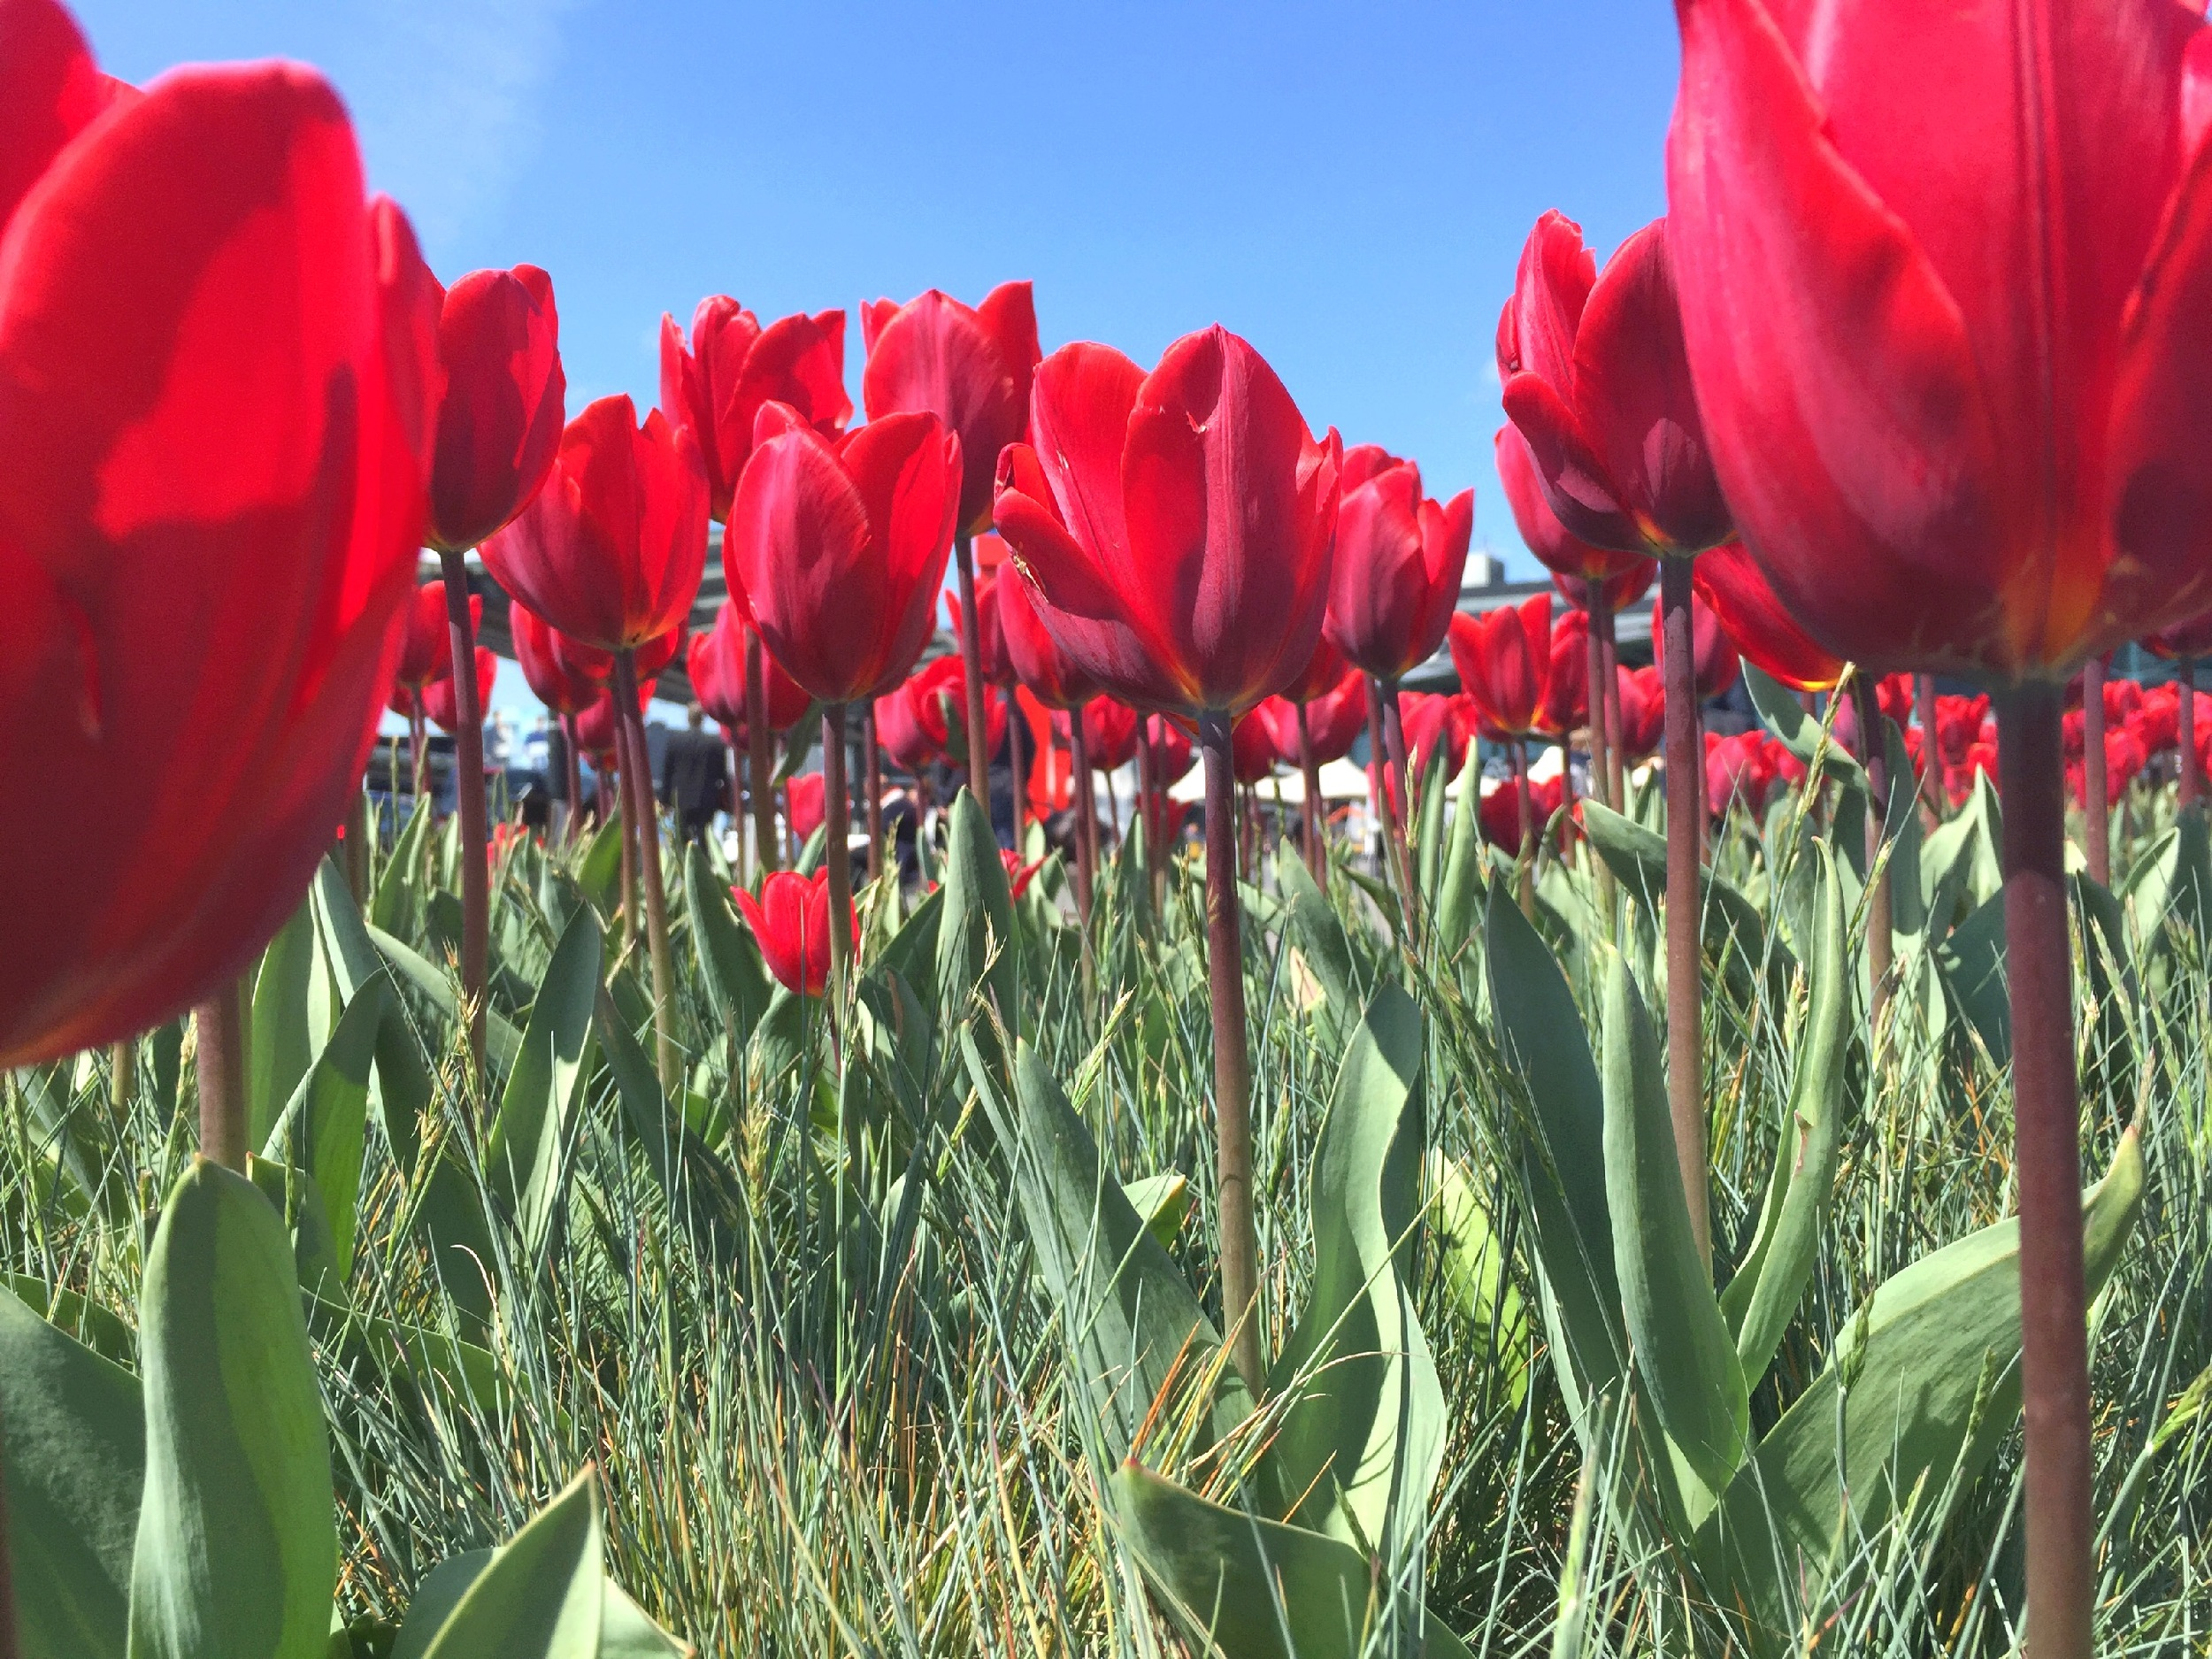 Tulips in Amsterdam, taken with iPhone 6Plus